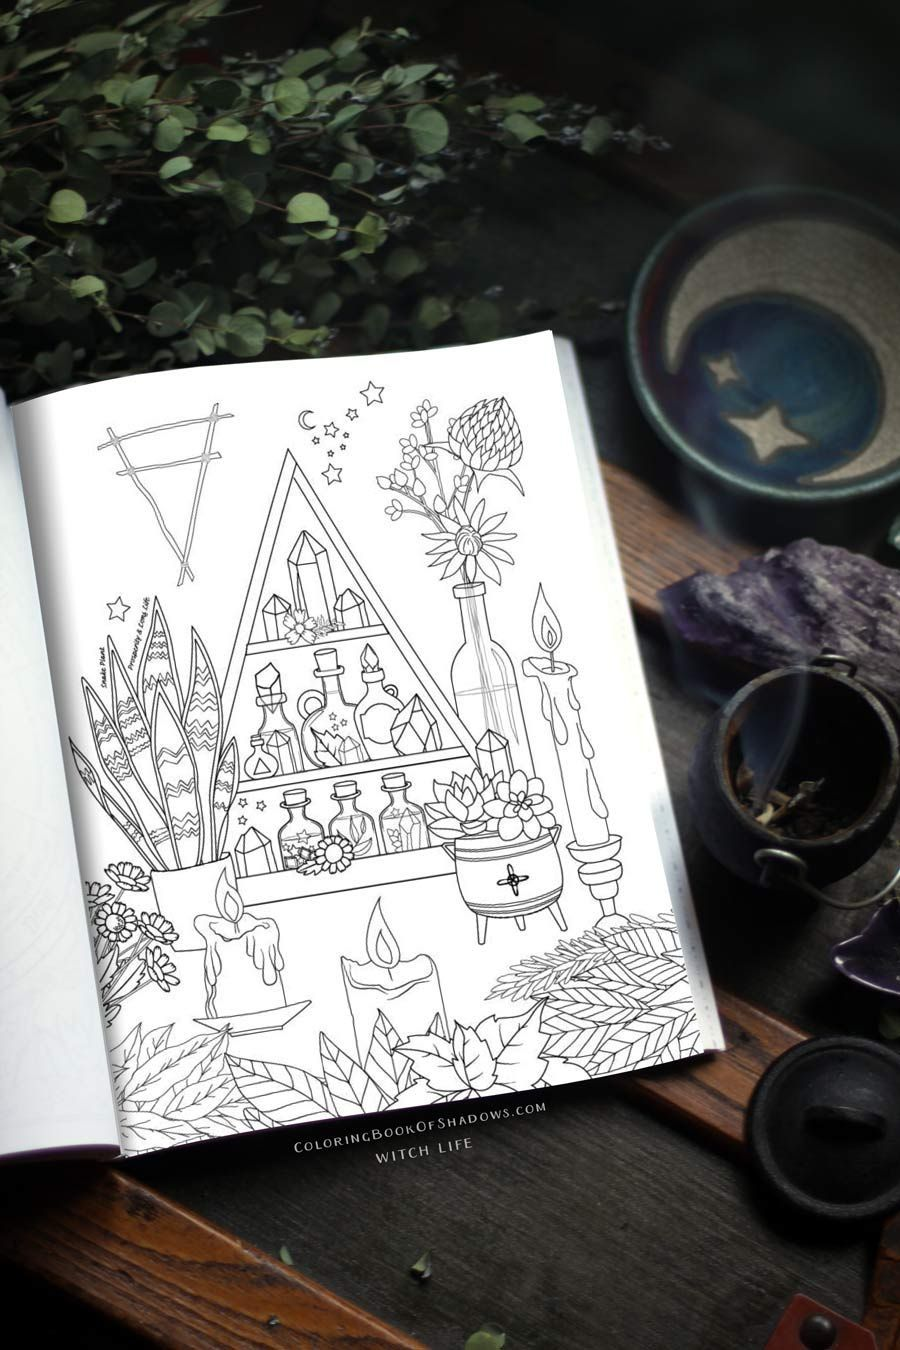 Book of Shadows ideas - Witch Life is a coloring book with grimoire pages,  spellcraft, inspiration, and witchy things to do